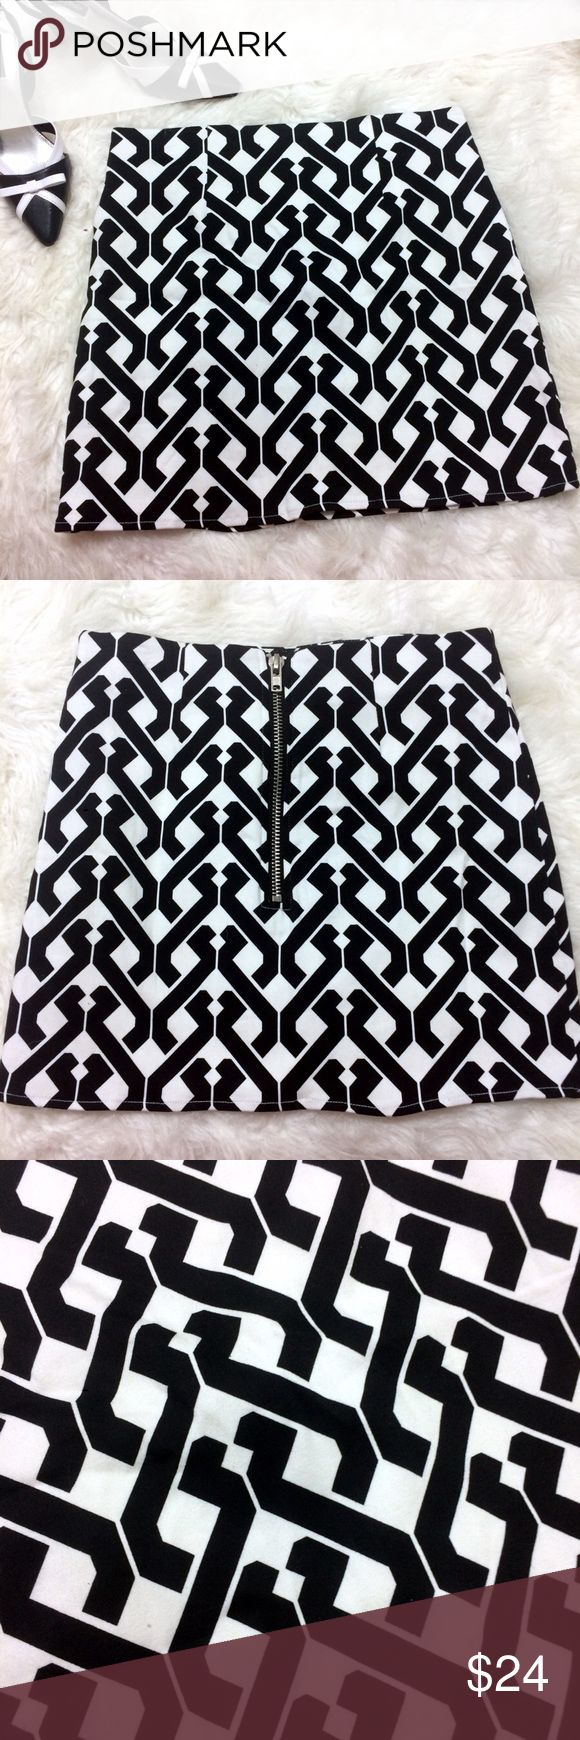 """Geometric Design Mini Skirt w zipper Cute skirt with geometric patterns. Black and white is a classic! Add a Ruffle Blouse, blazer and heels for the office. A tank and platforms can take this office skirt to a going out skirt!   Great used condition  Zipper on back, fully lined marker on tag as shown  size S  14"""" waist 15"""" length 95% cotton 5% spandex Emmelee Skirts Mini"""